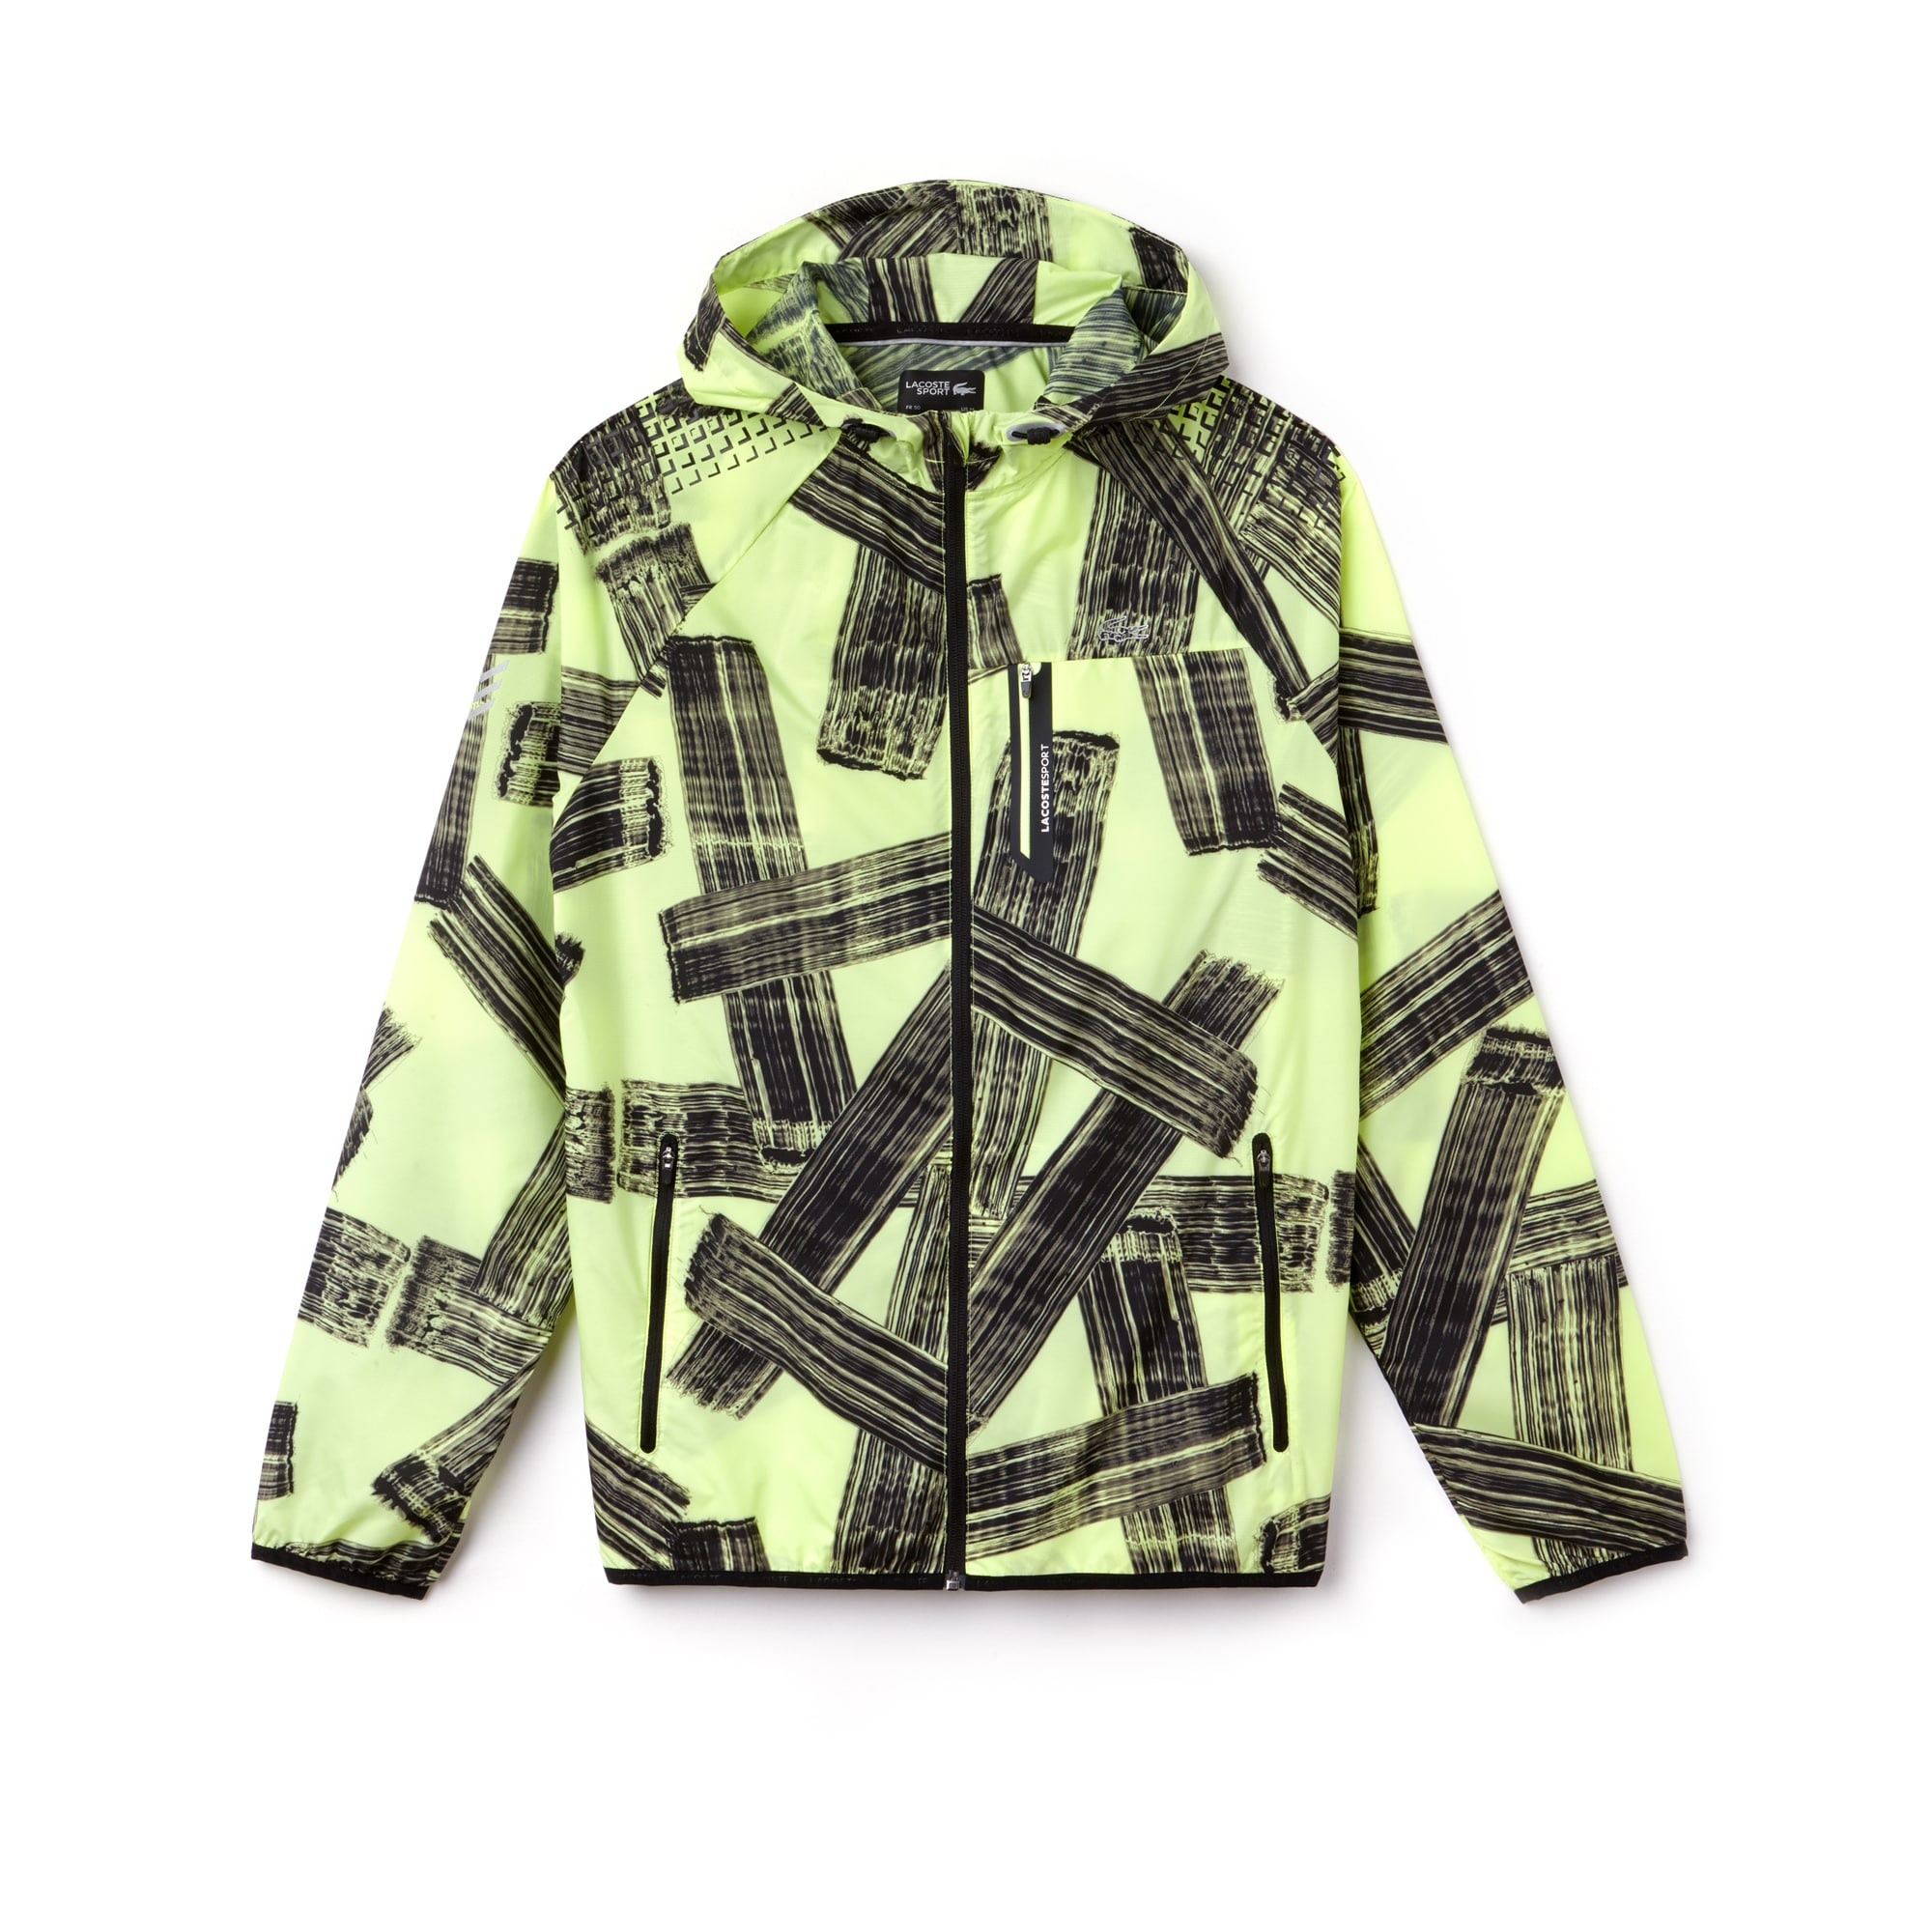 Men's SPORT Hooded Print Tennis Jacket